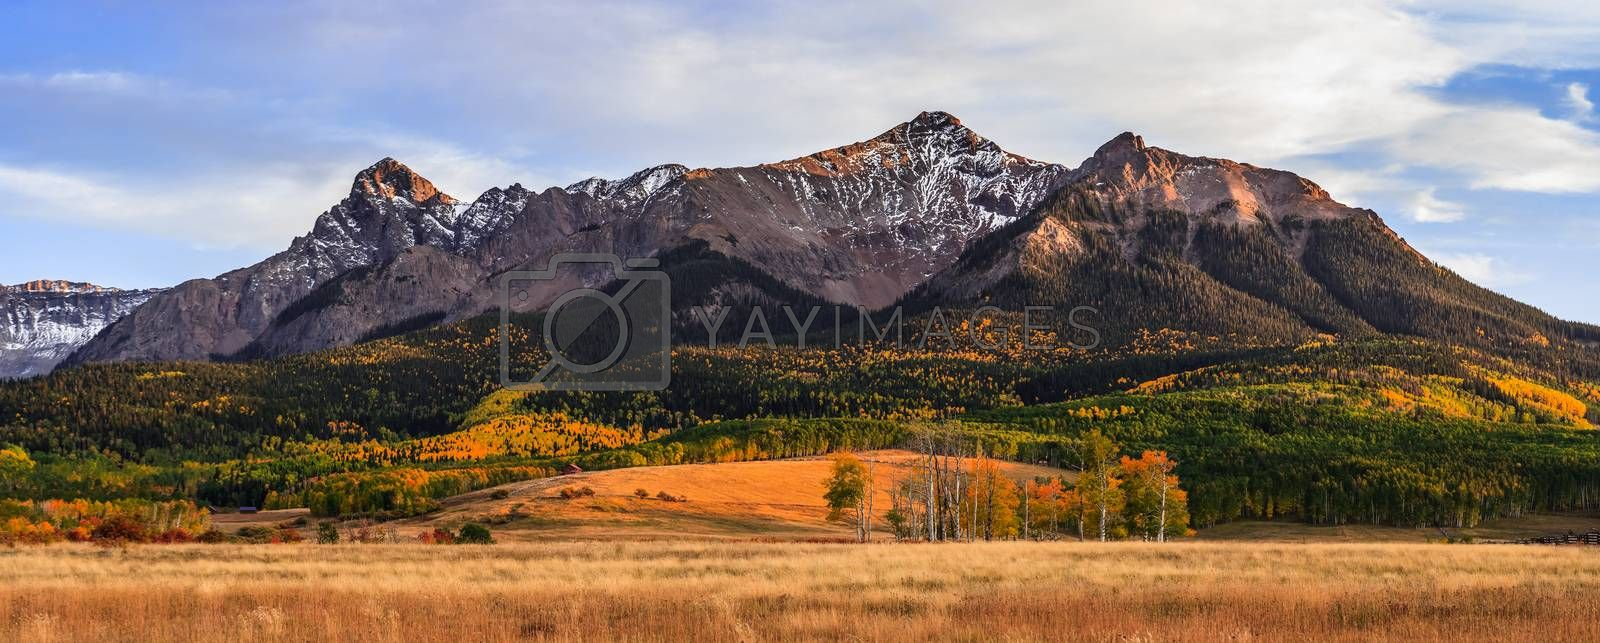 Colorado Autumn Scenic Beauty - The San Juan Mountains as Viewed from Last Dollar Road